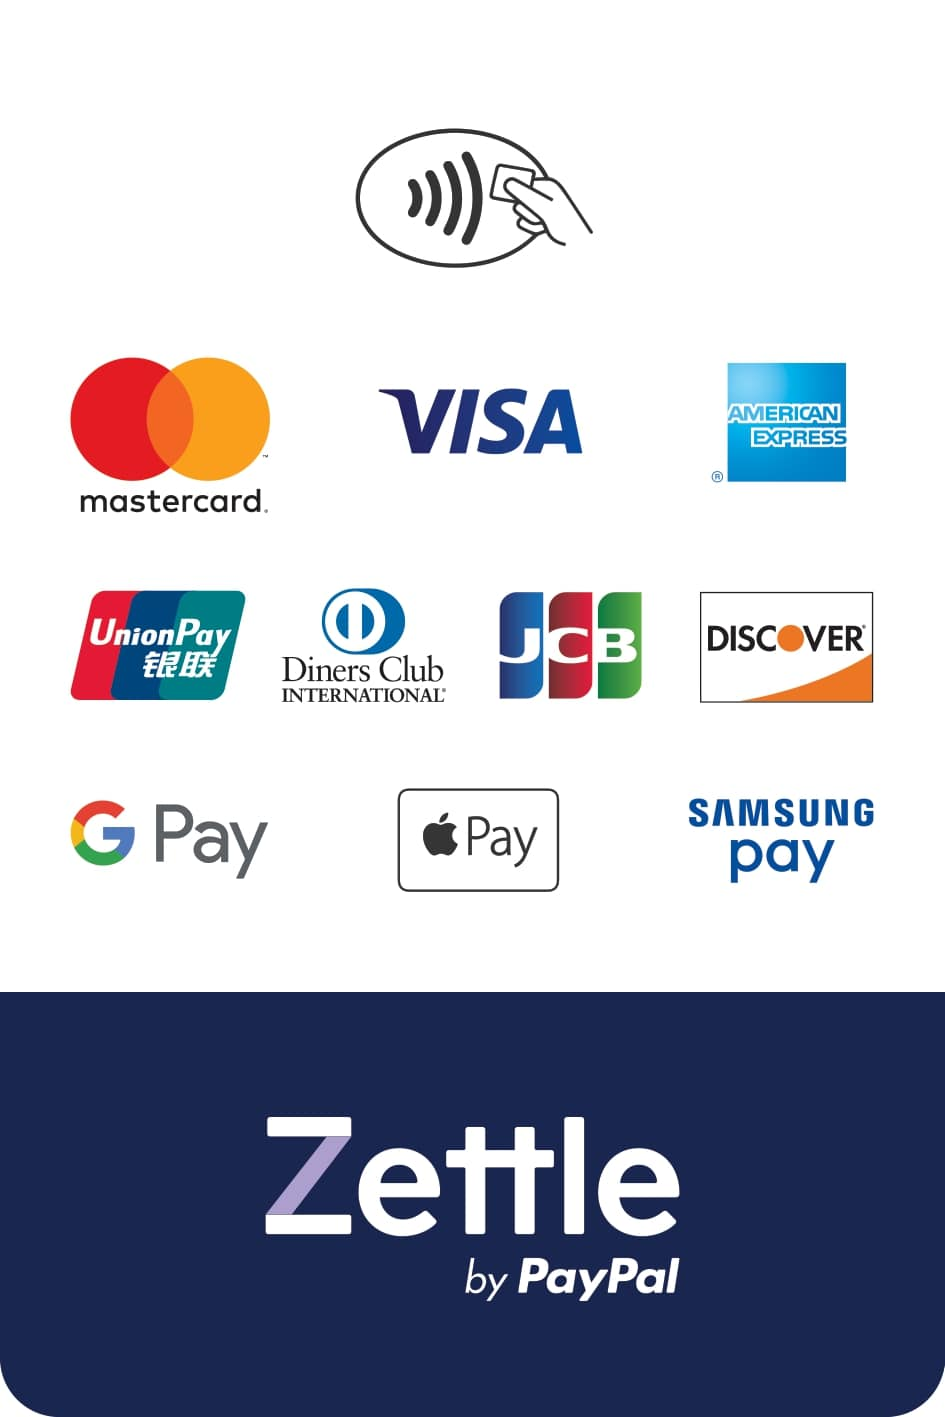 zettle tpe by paypal information